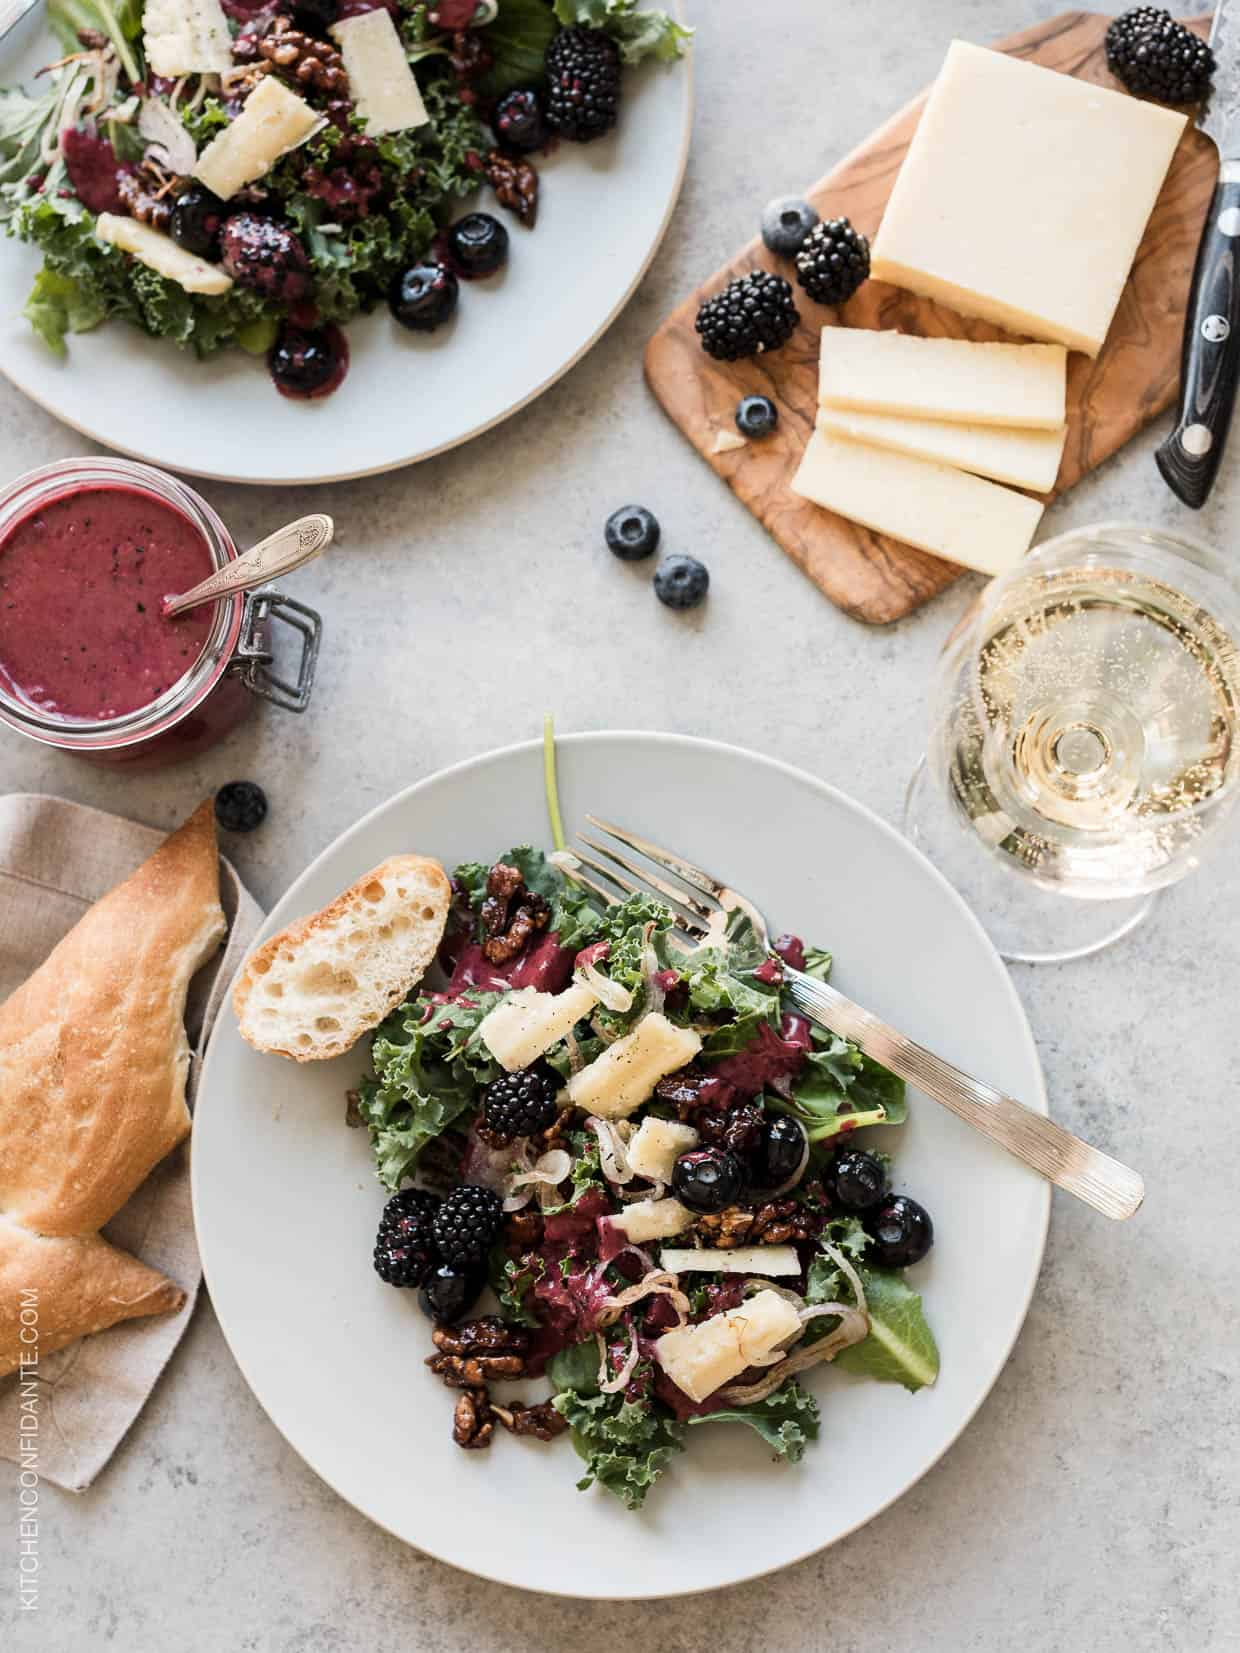 Blackberry and Blueberry Kale Salad with Aged Havarti